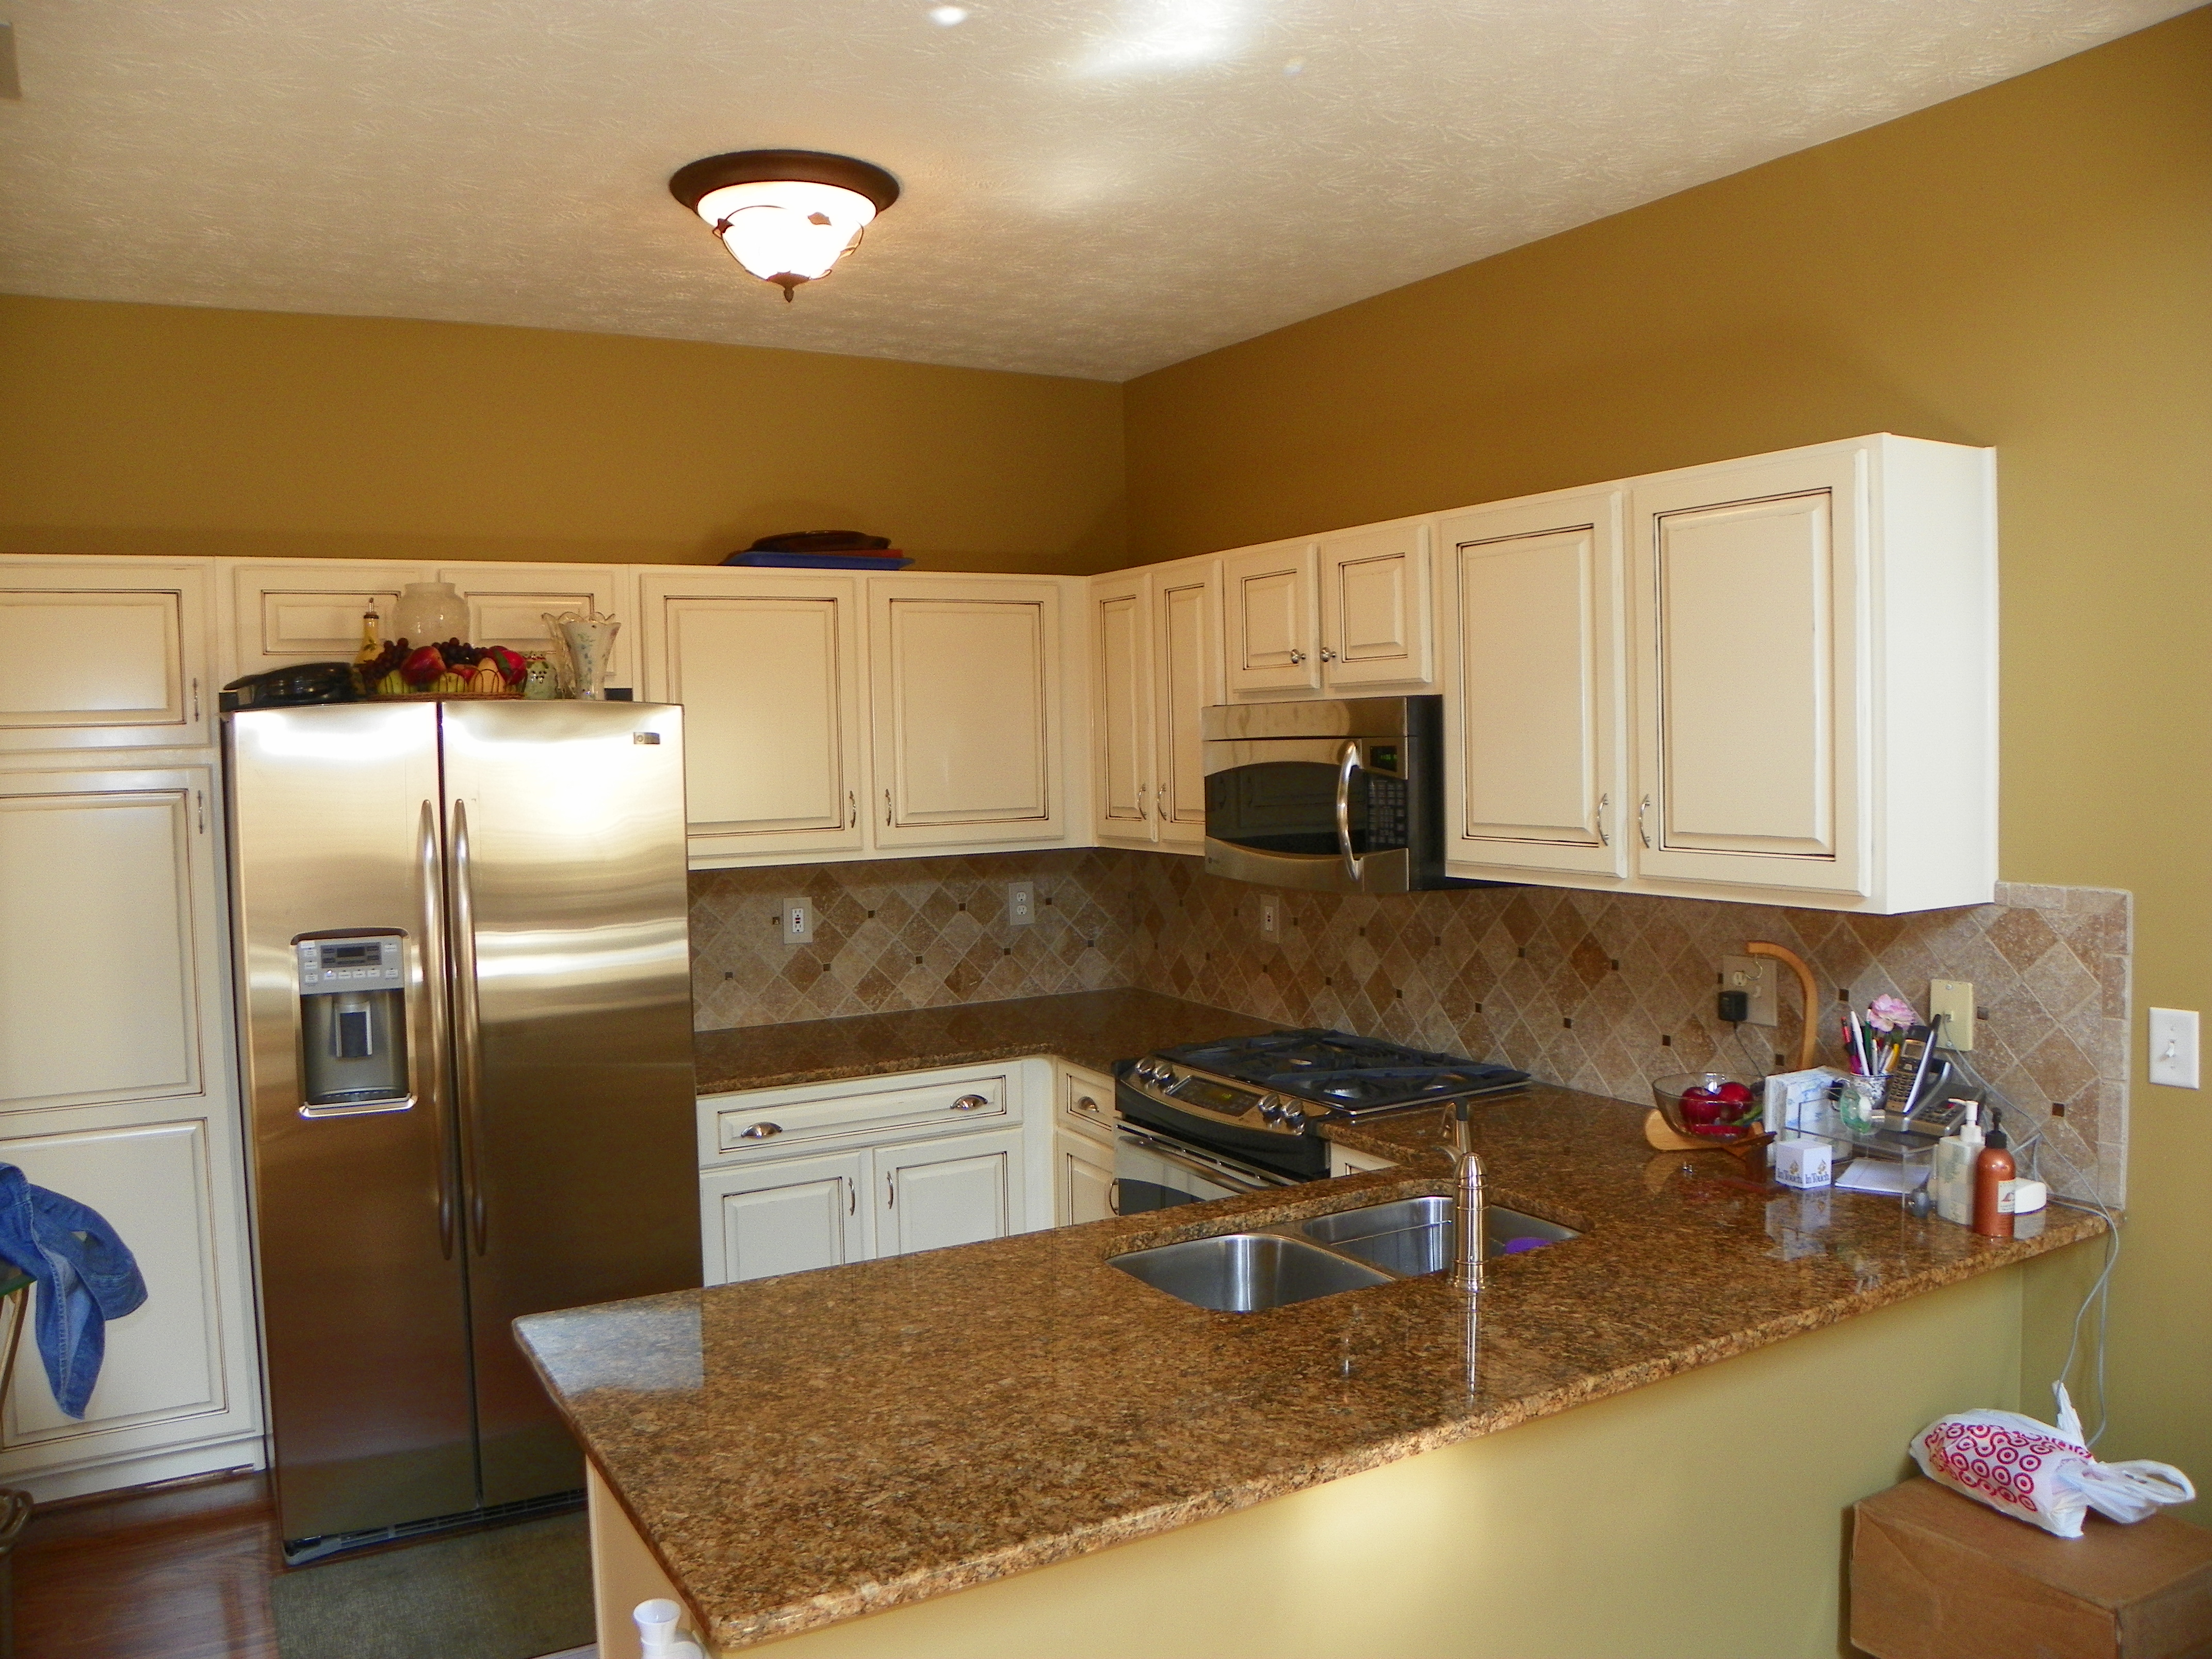 Kitchen remodeling with appliances, granite and more.